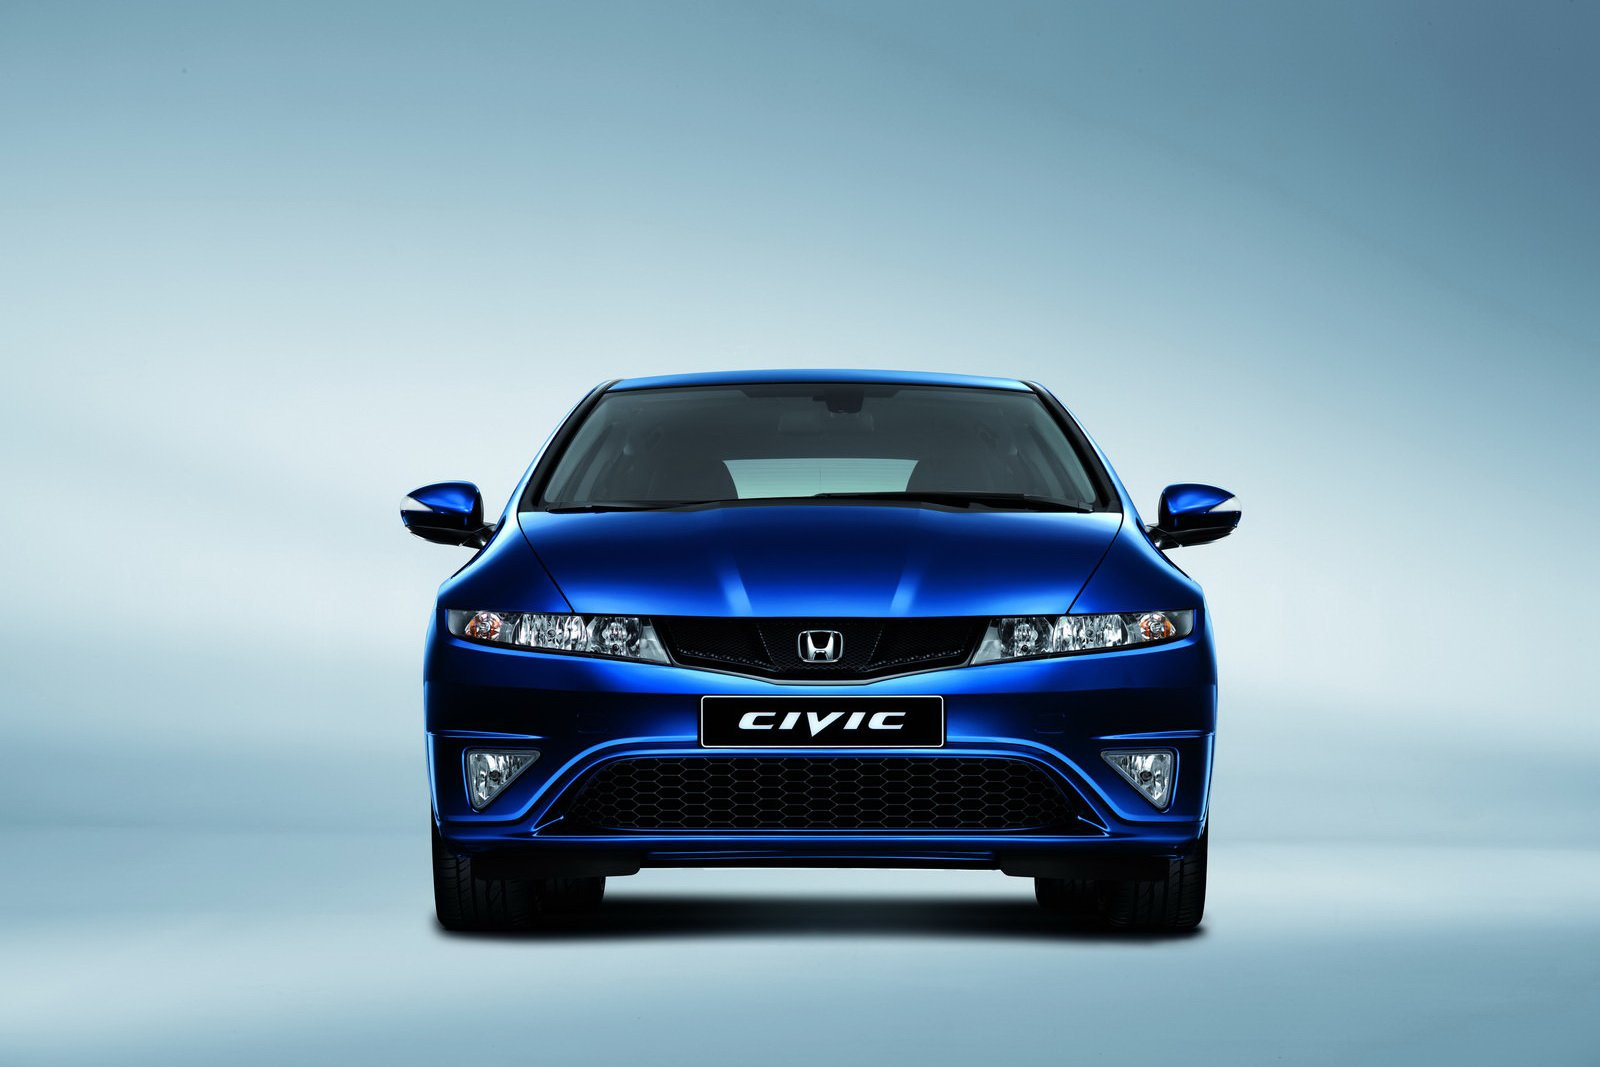 New Car Wallpapers Honda Civic 2011 Car Wallpaper Review On This Month